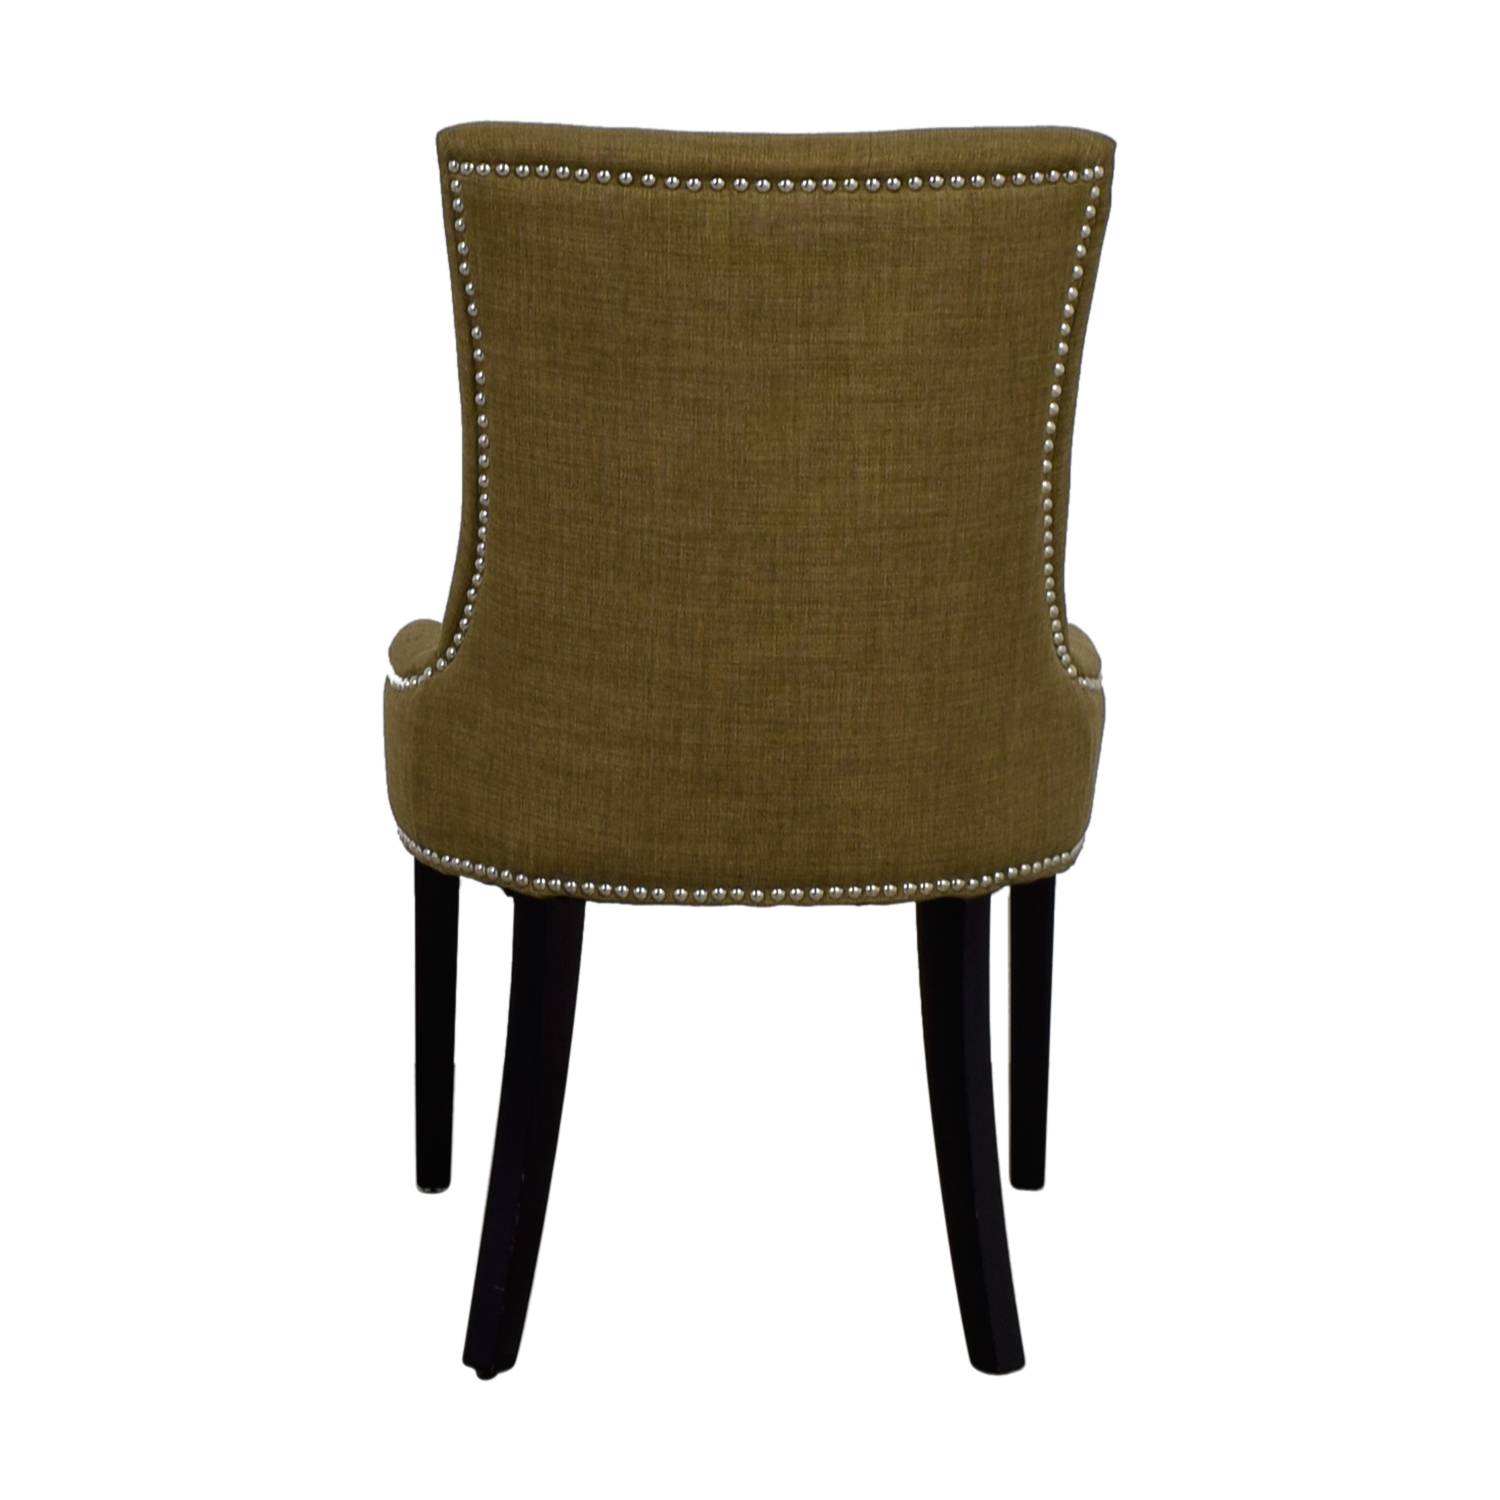 Abbyson Newport Tan Fabric Nailhead Dining Chair / Chairs